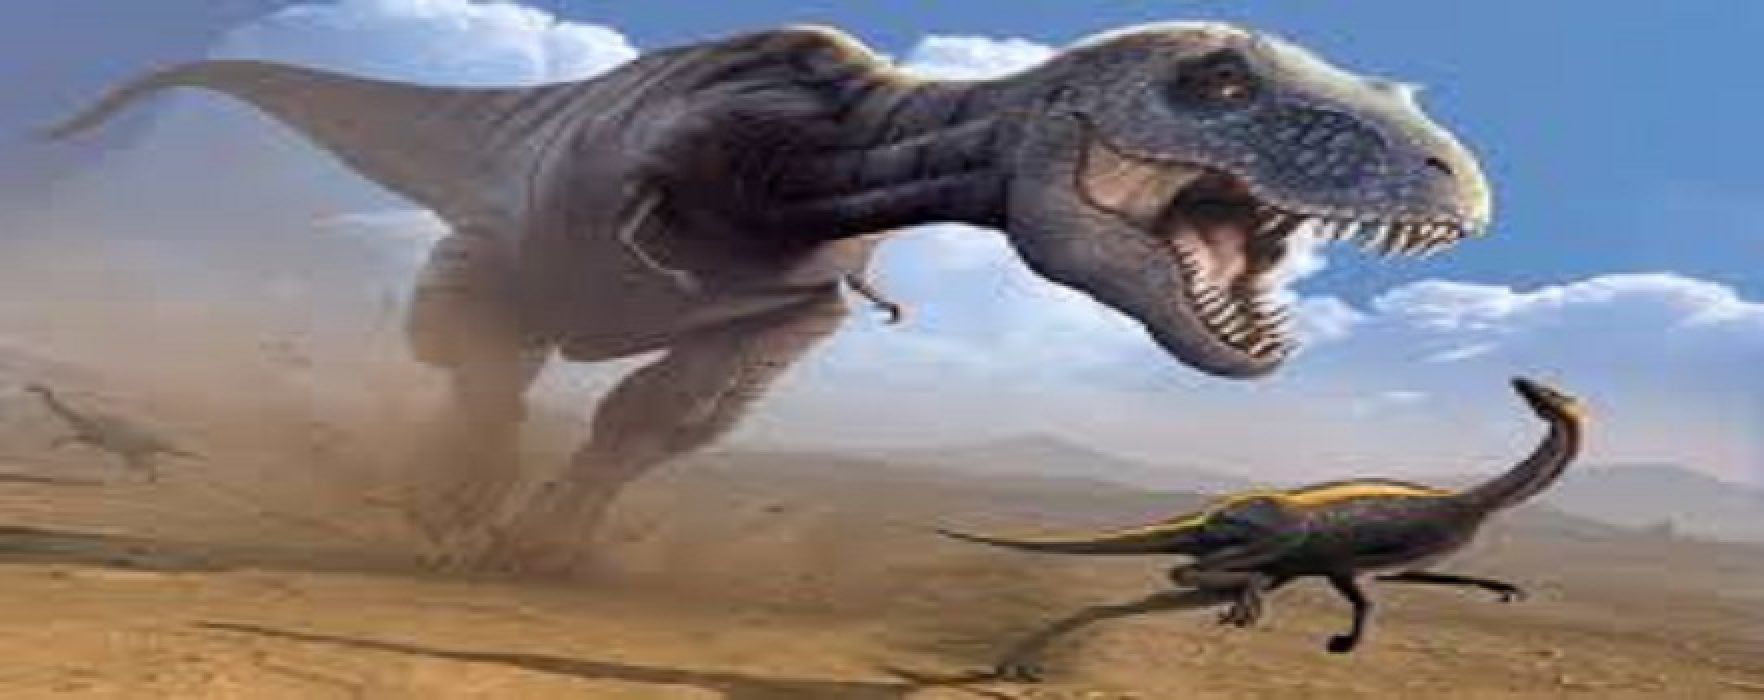 T. Rex's Tiny Arms Were Weapons After All